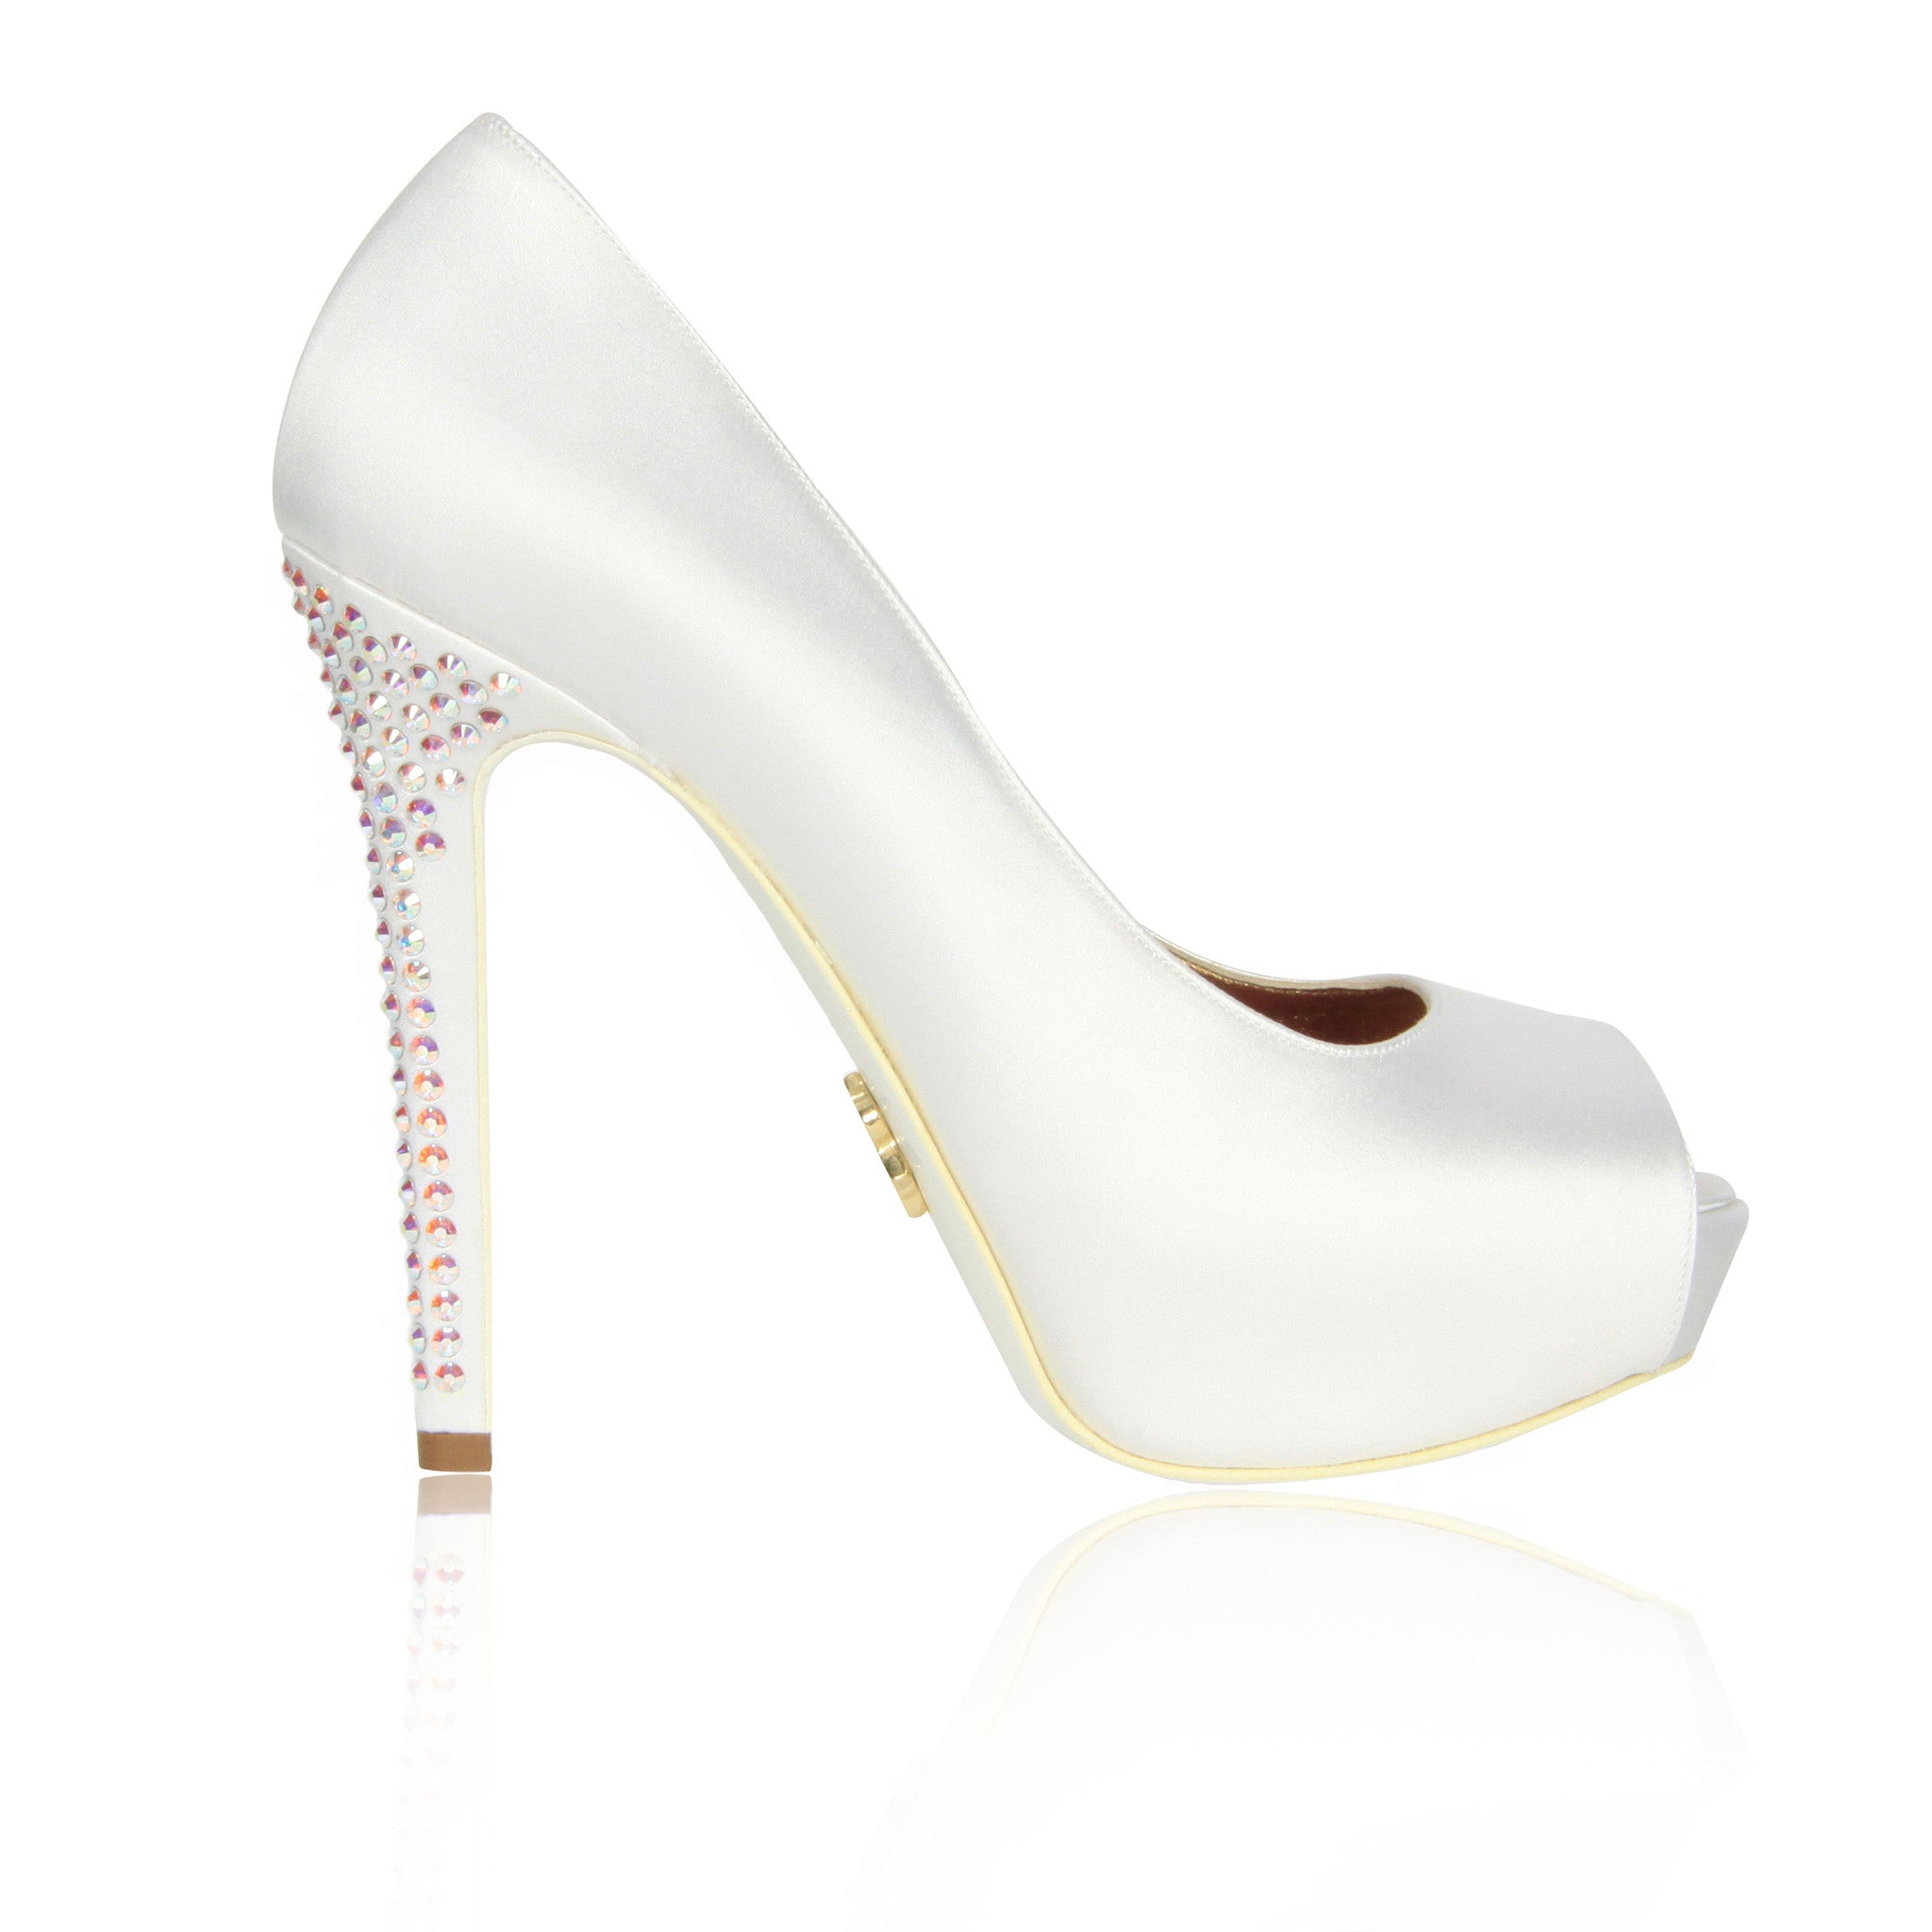 White Krista-Lawren Satin Platform Pumps